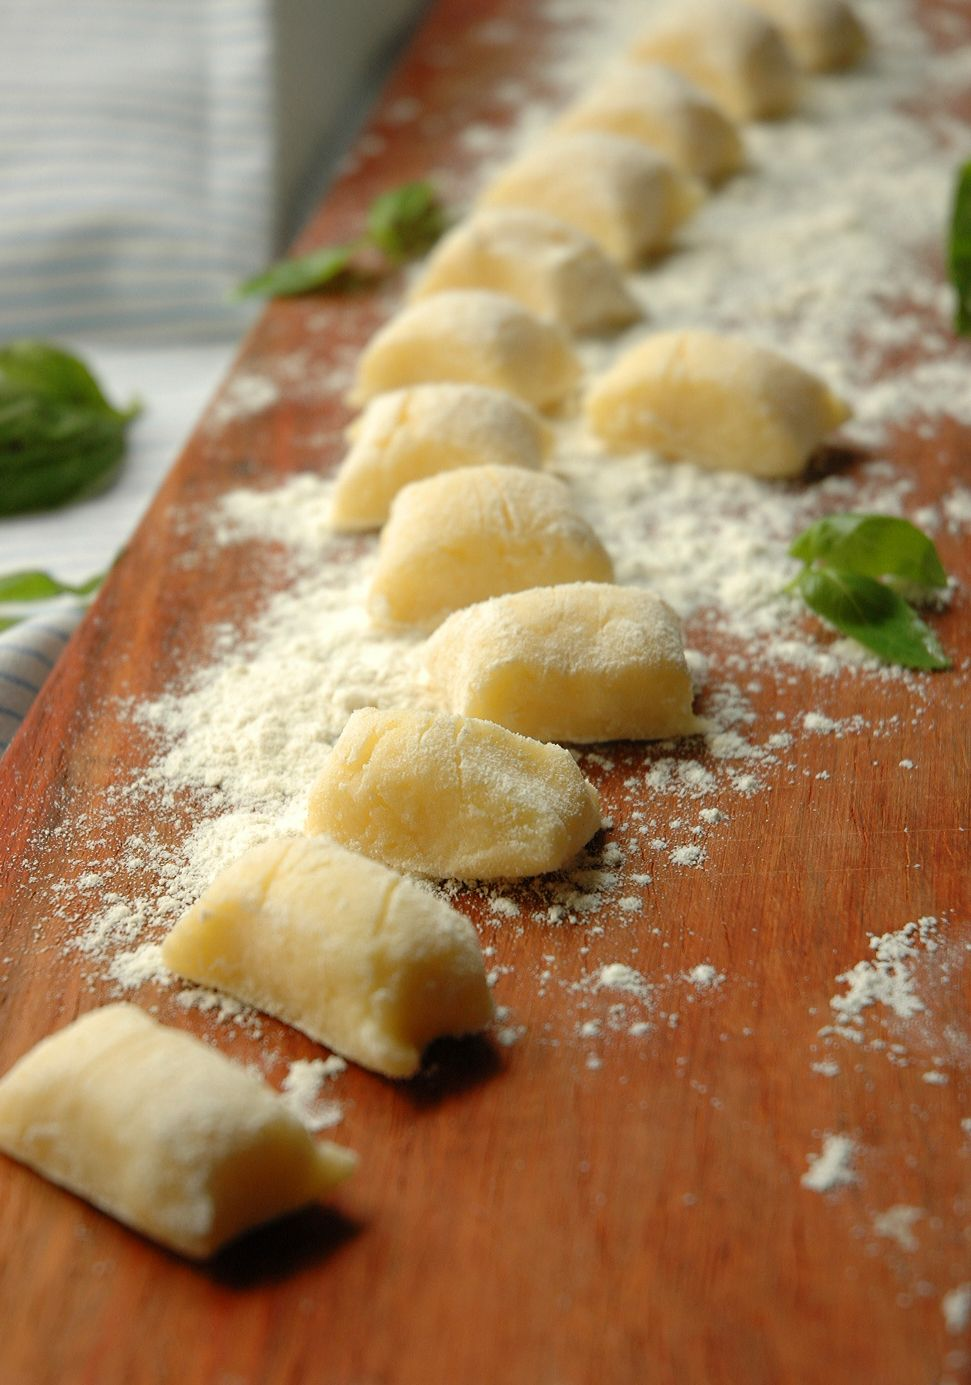 Gnocchi with Tomato and Basil - 5 potatoes, 200gr flour, salt, 1 egg... extra flour for rolling.... boil until floating